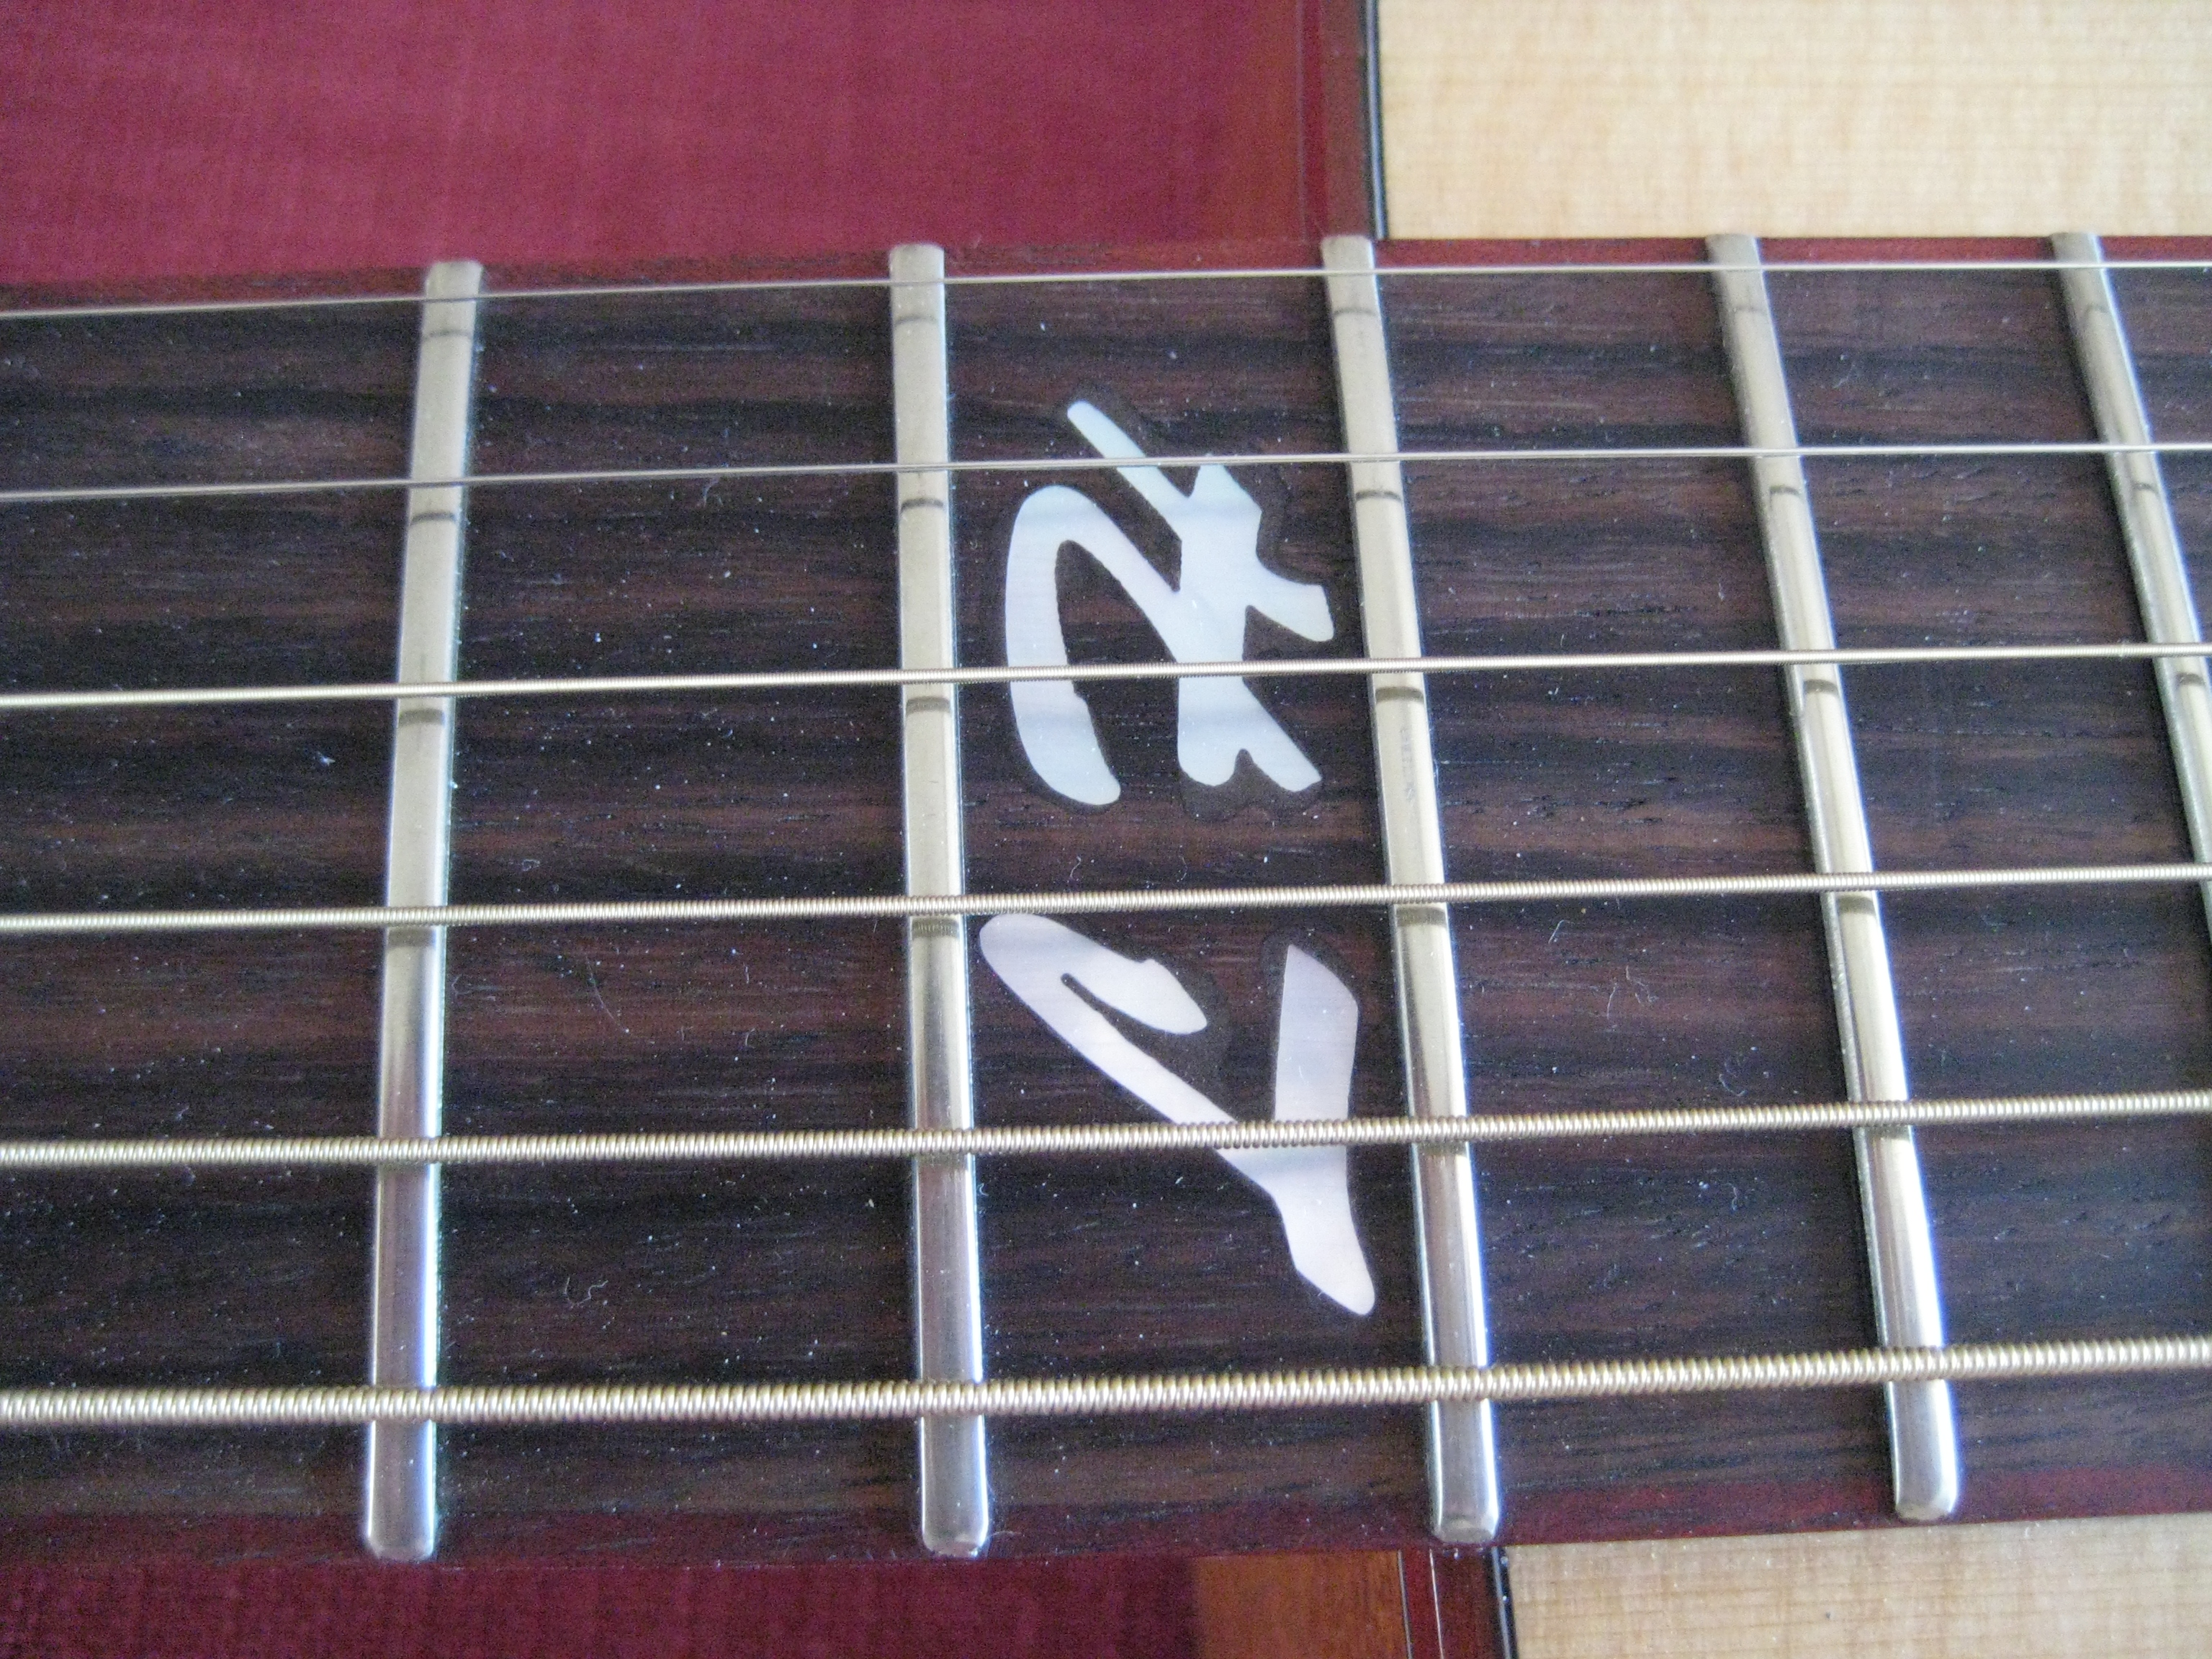 Customer's initial inlay